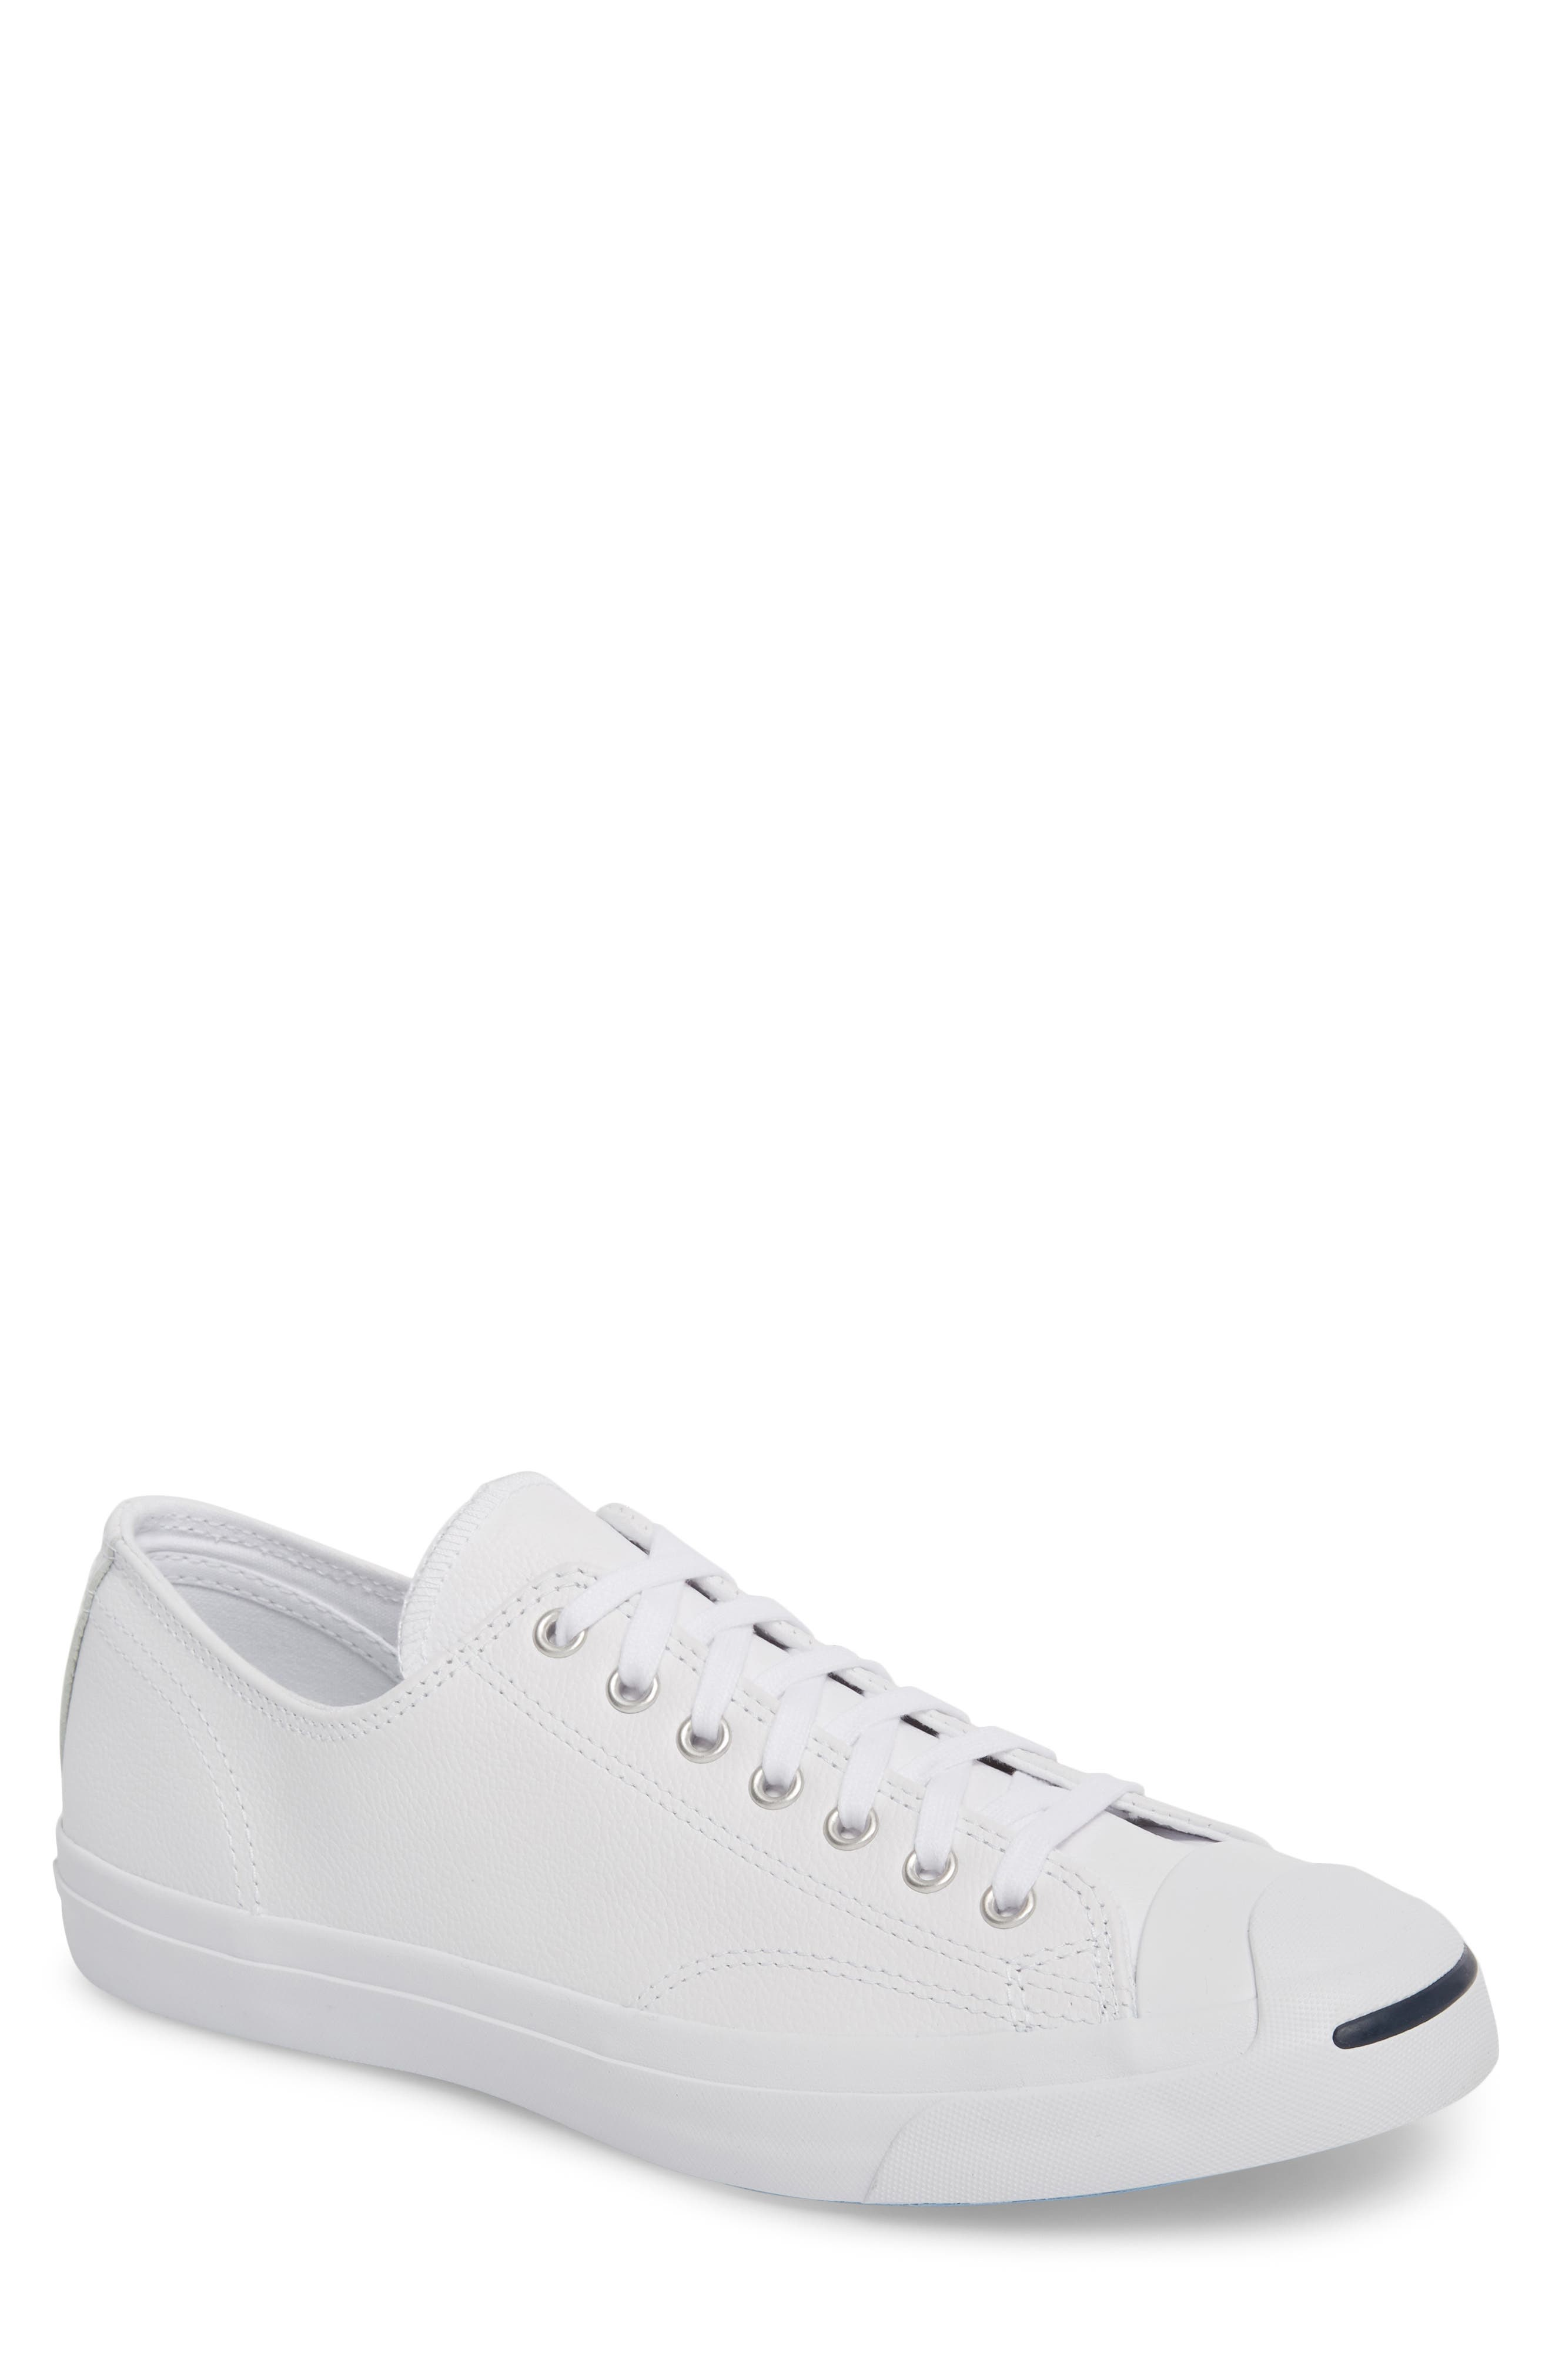 7d7f61b1788153 ... coupon for converse jack purcell leather sneaker main color white navy  1de25 594a9